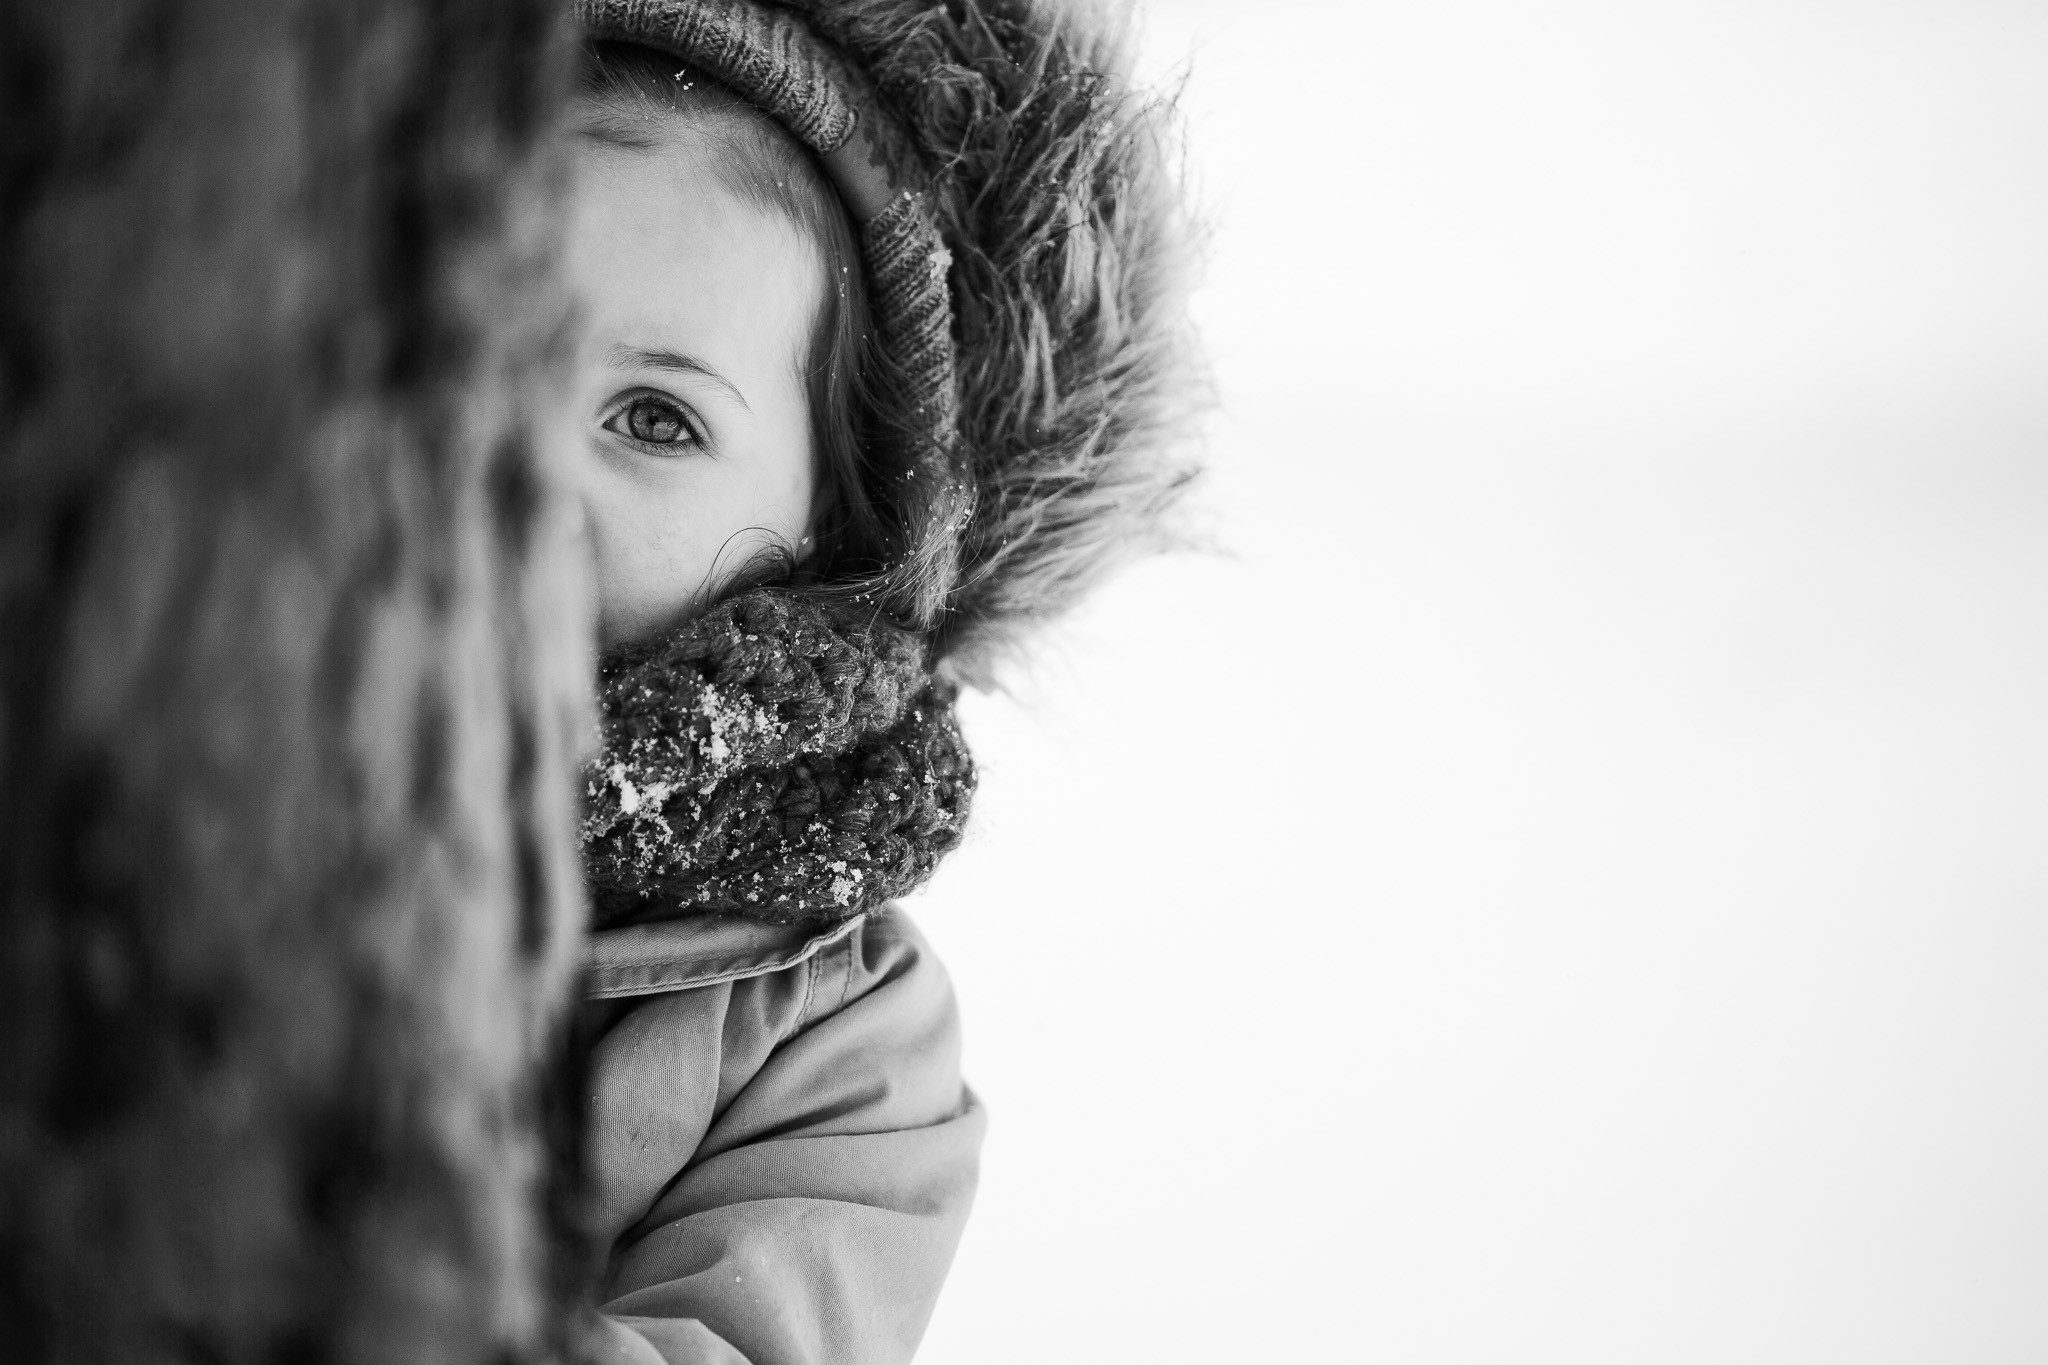 Black and white portrait of a toddler hiding behind a tree